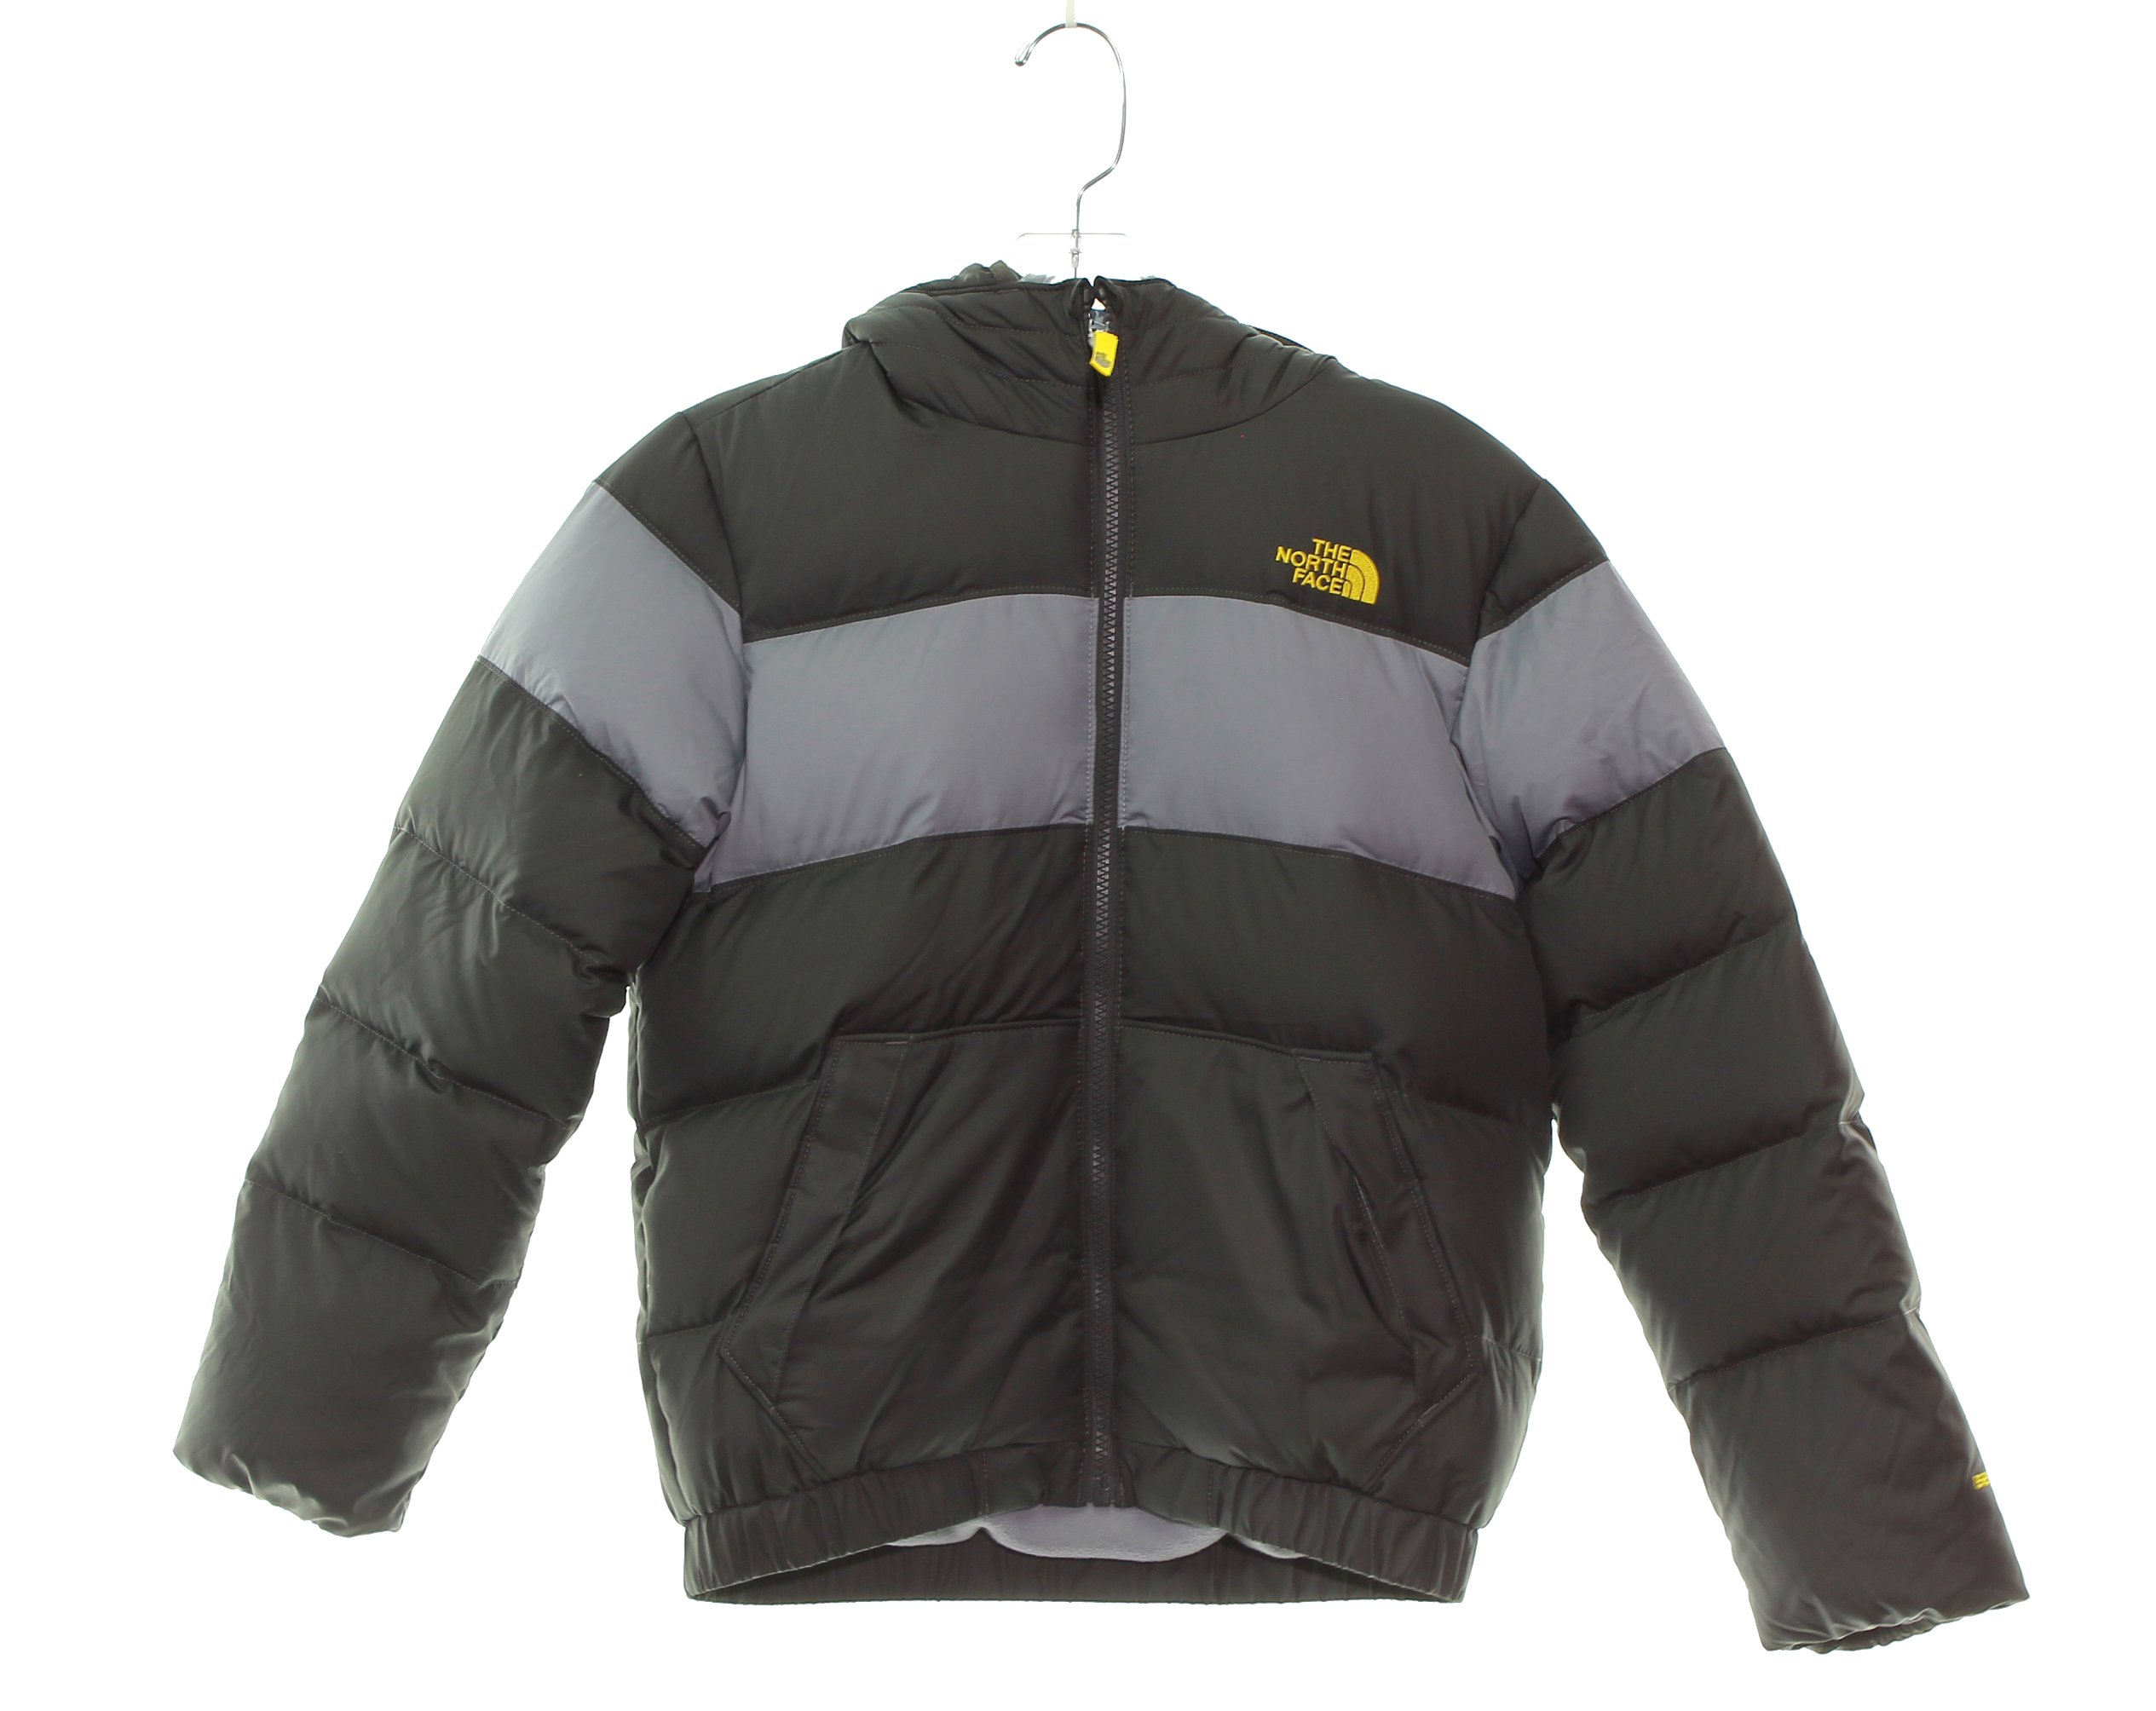 Boy's The North Face Moondoggy 2.0 Down Jacket Size 10/12 Medium Graphite Grey by No Warranty The North Face